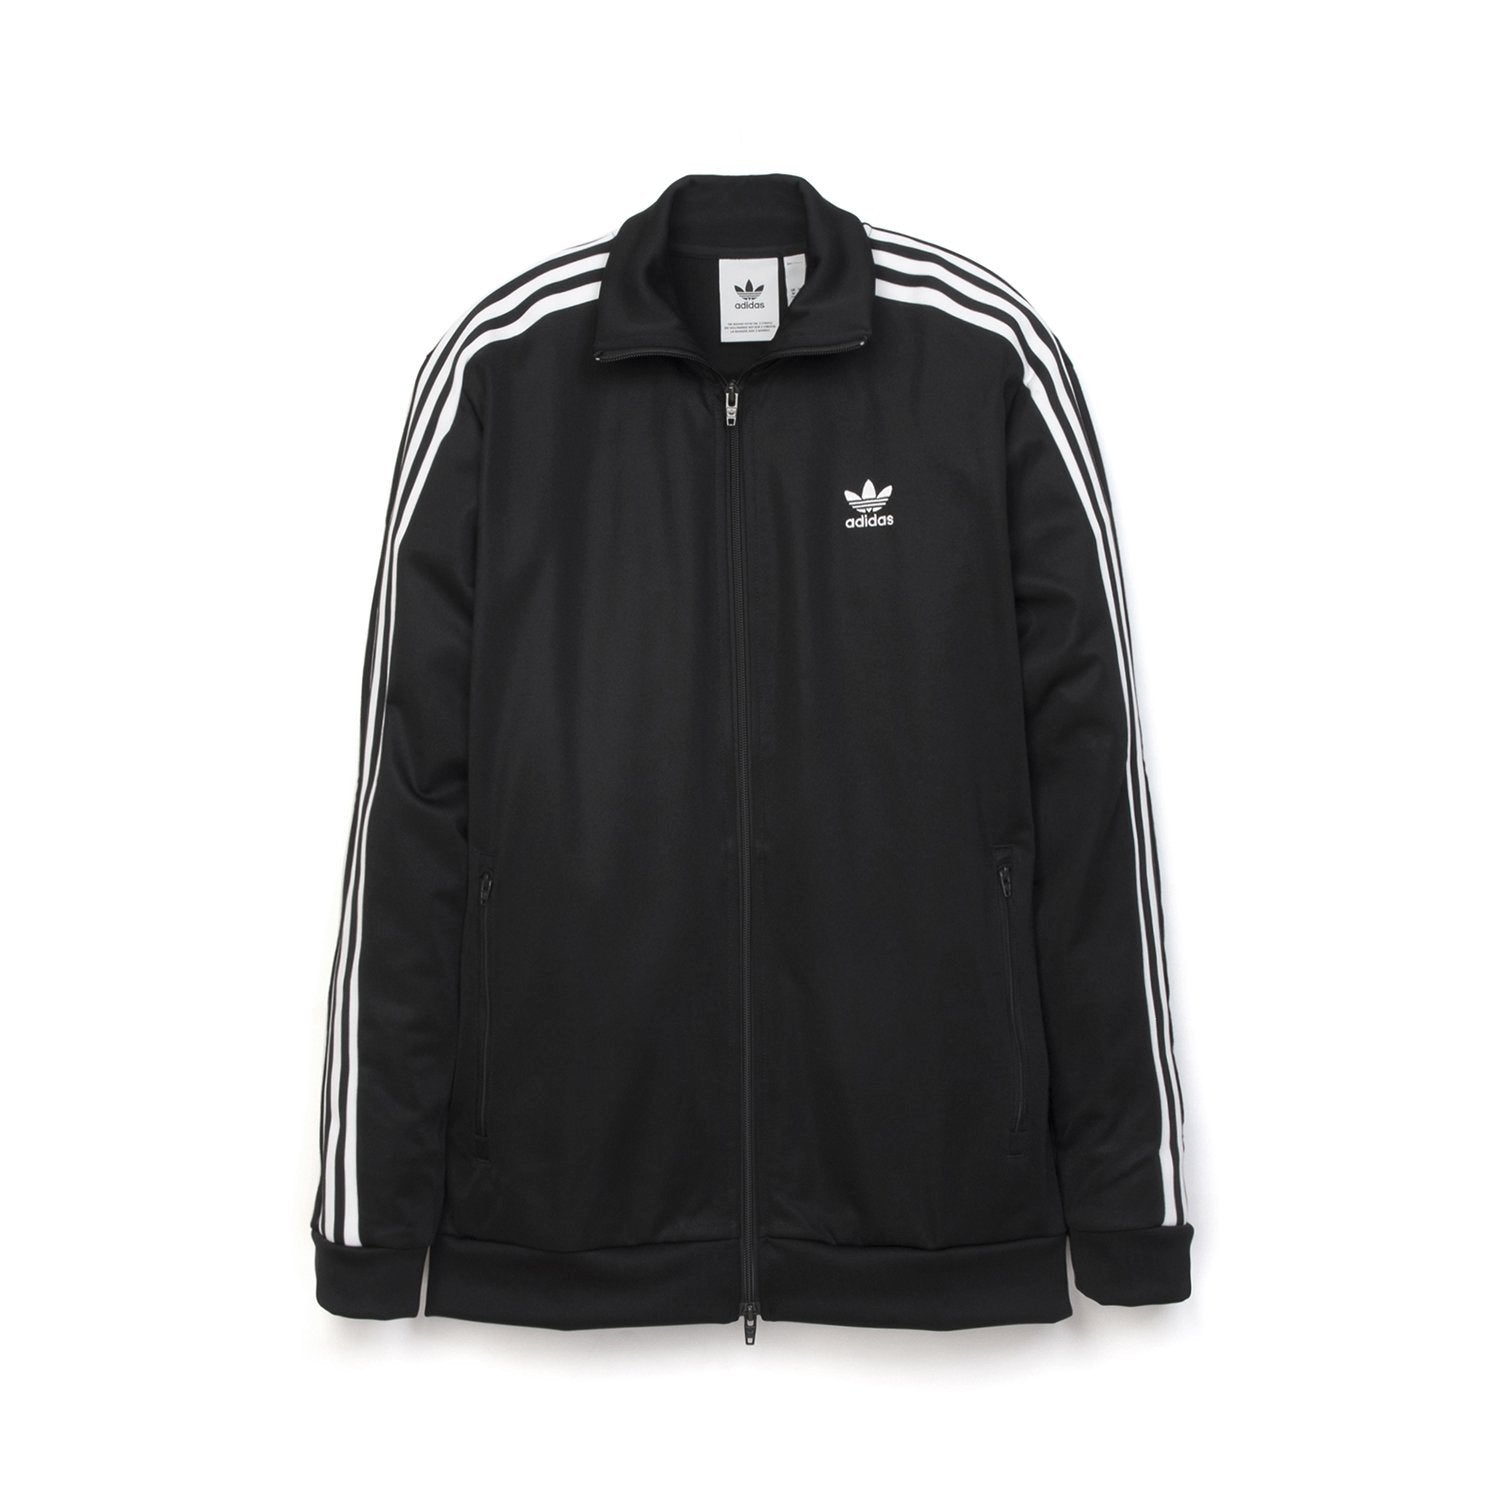 black on black adidas track jacket